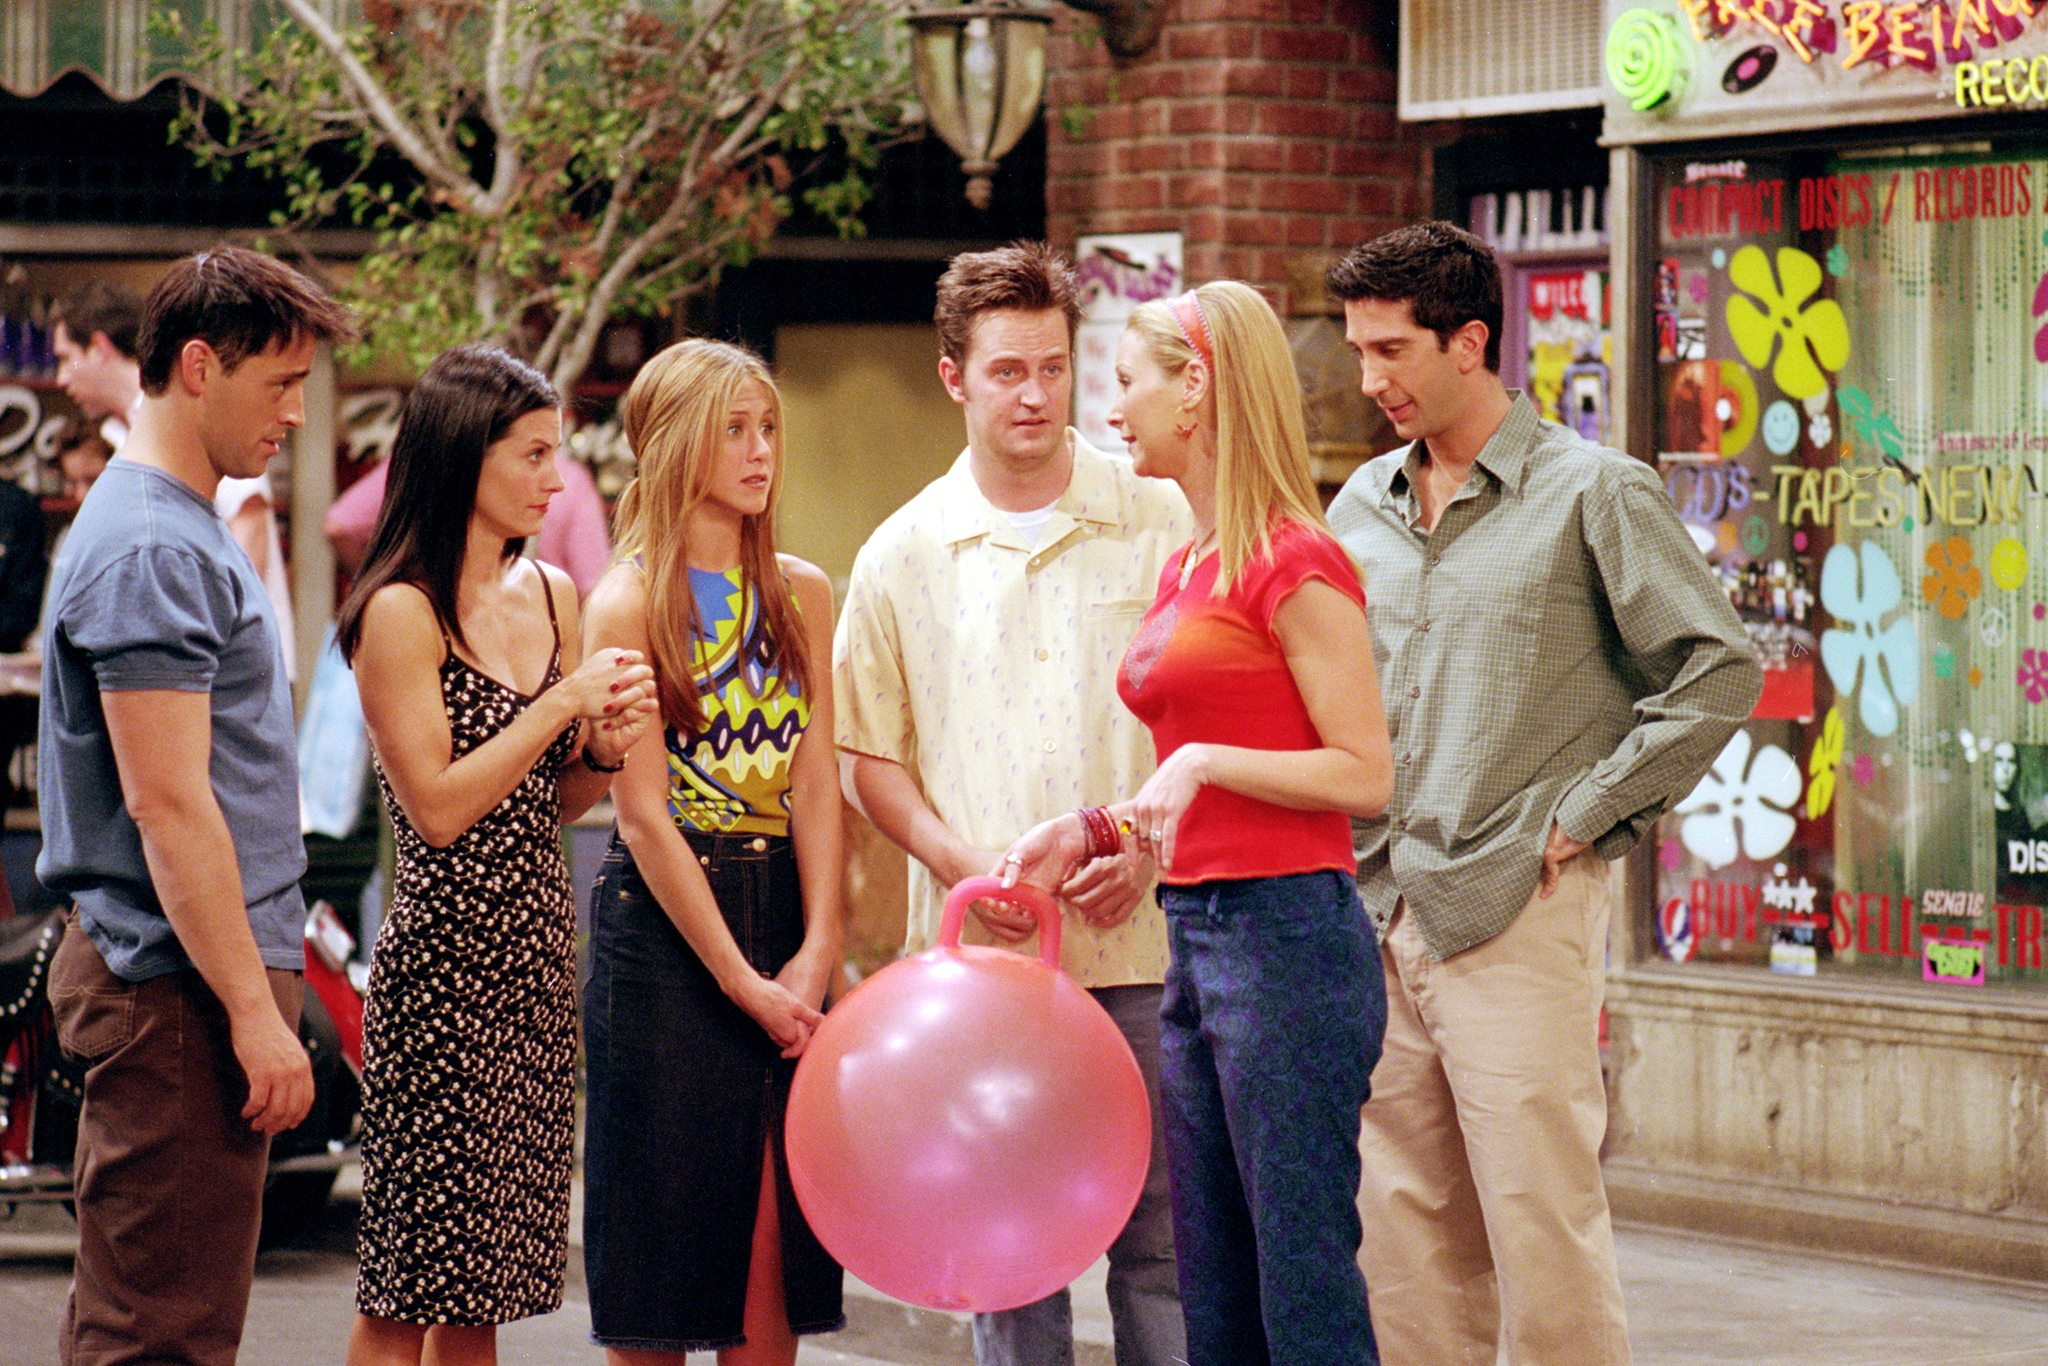 90's Top TV show 'Friends' would continue to air on Nick at Nite